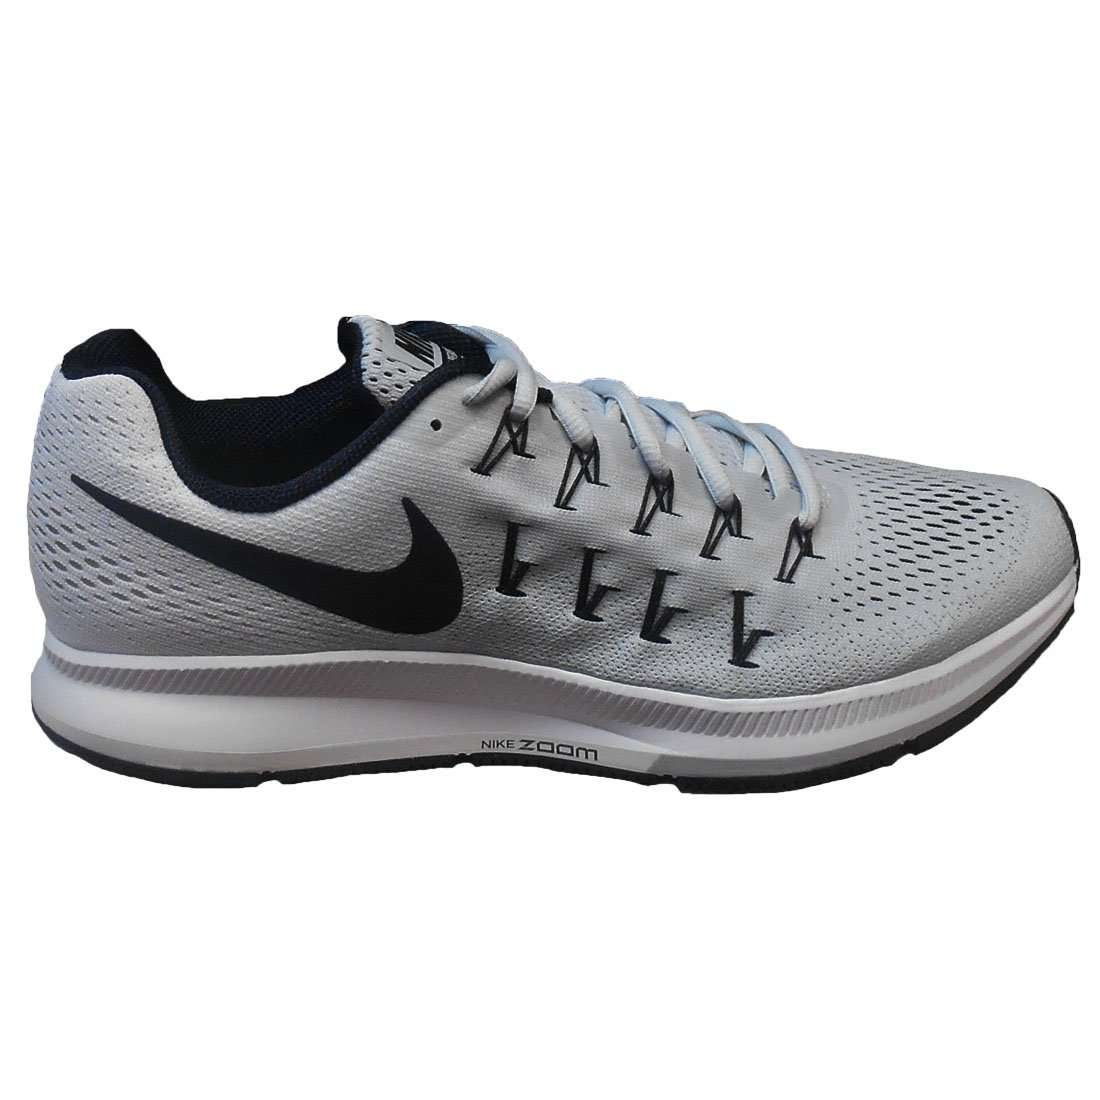 low priced d5df7 f2bbe Nike Air Zoom Pegasus 33 TB Running Shoes